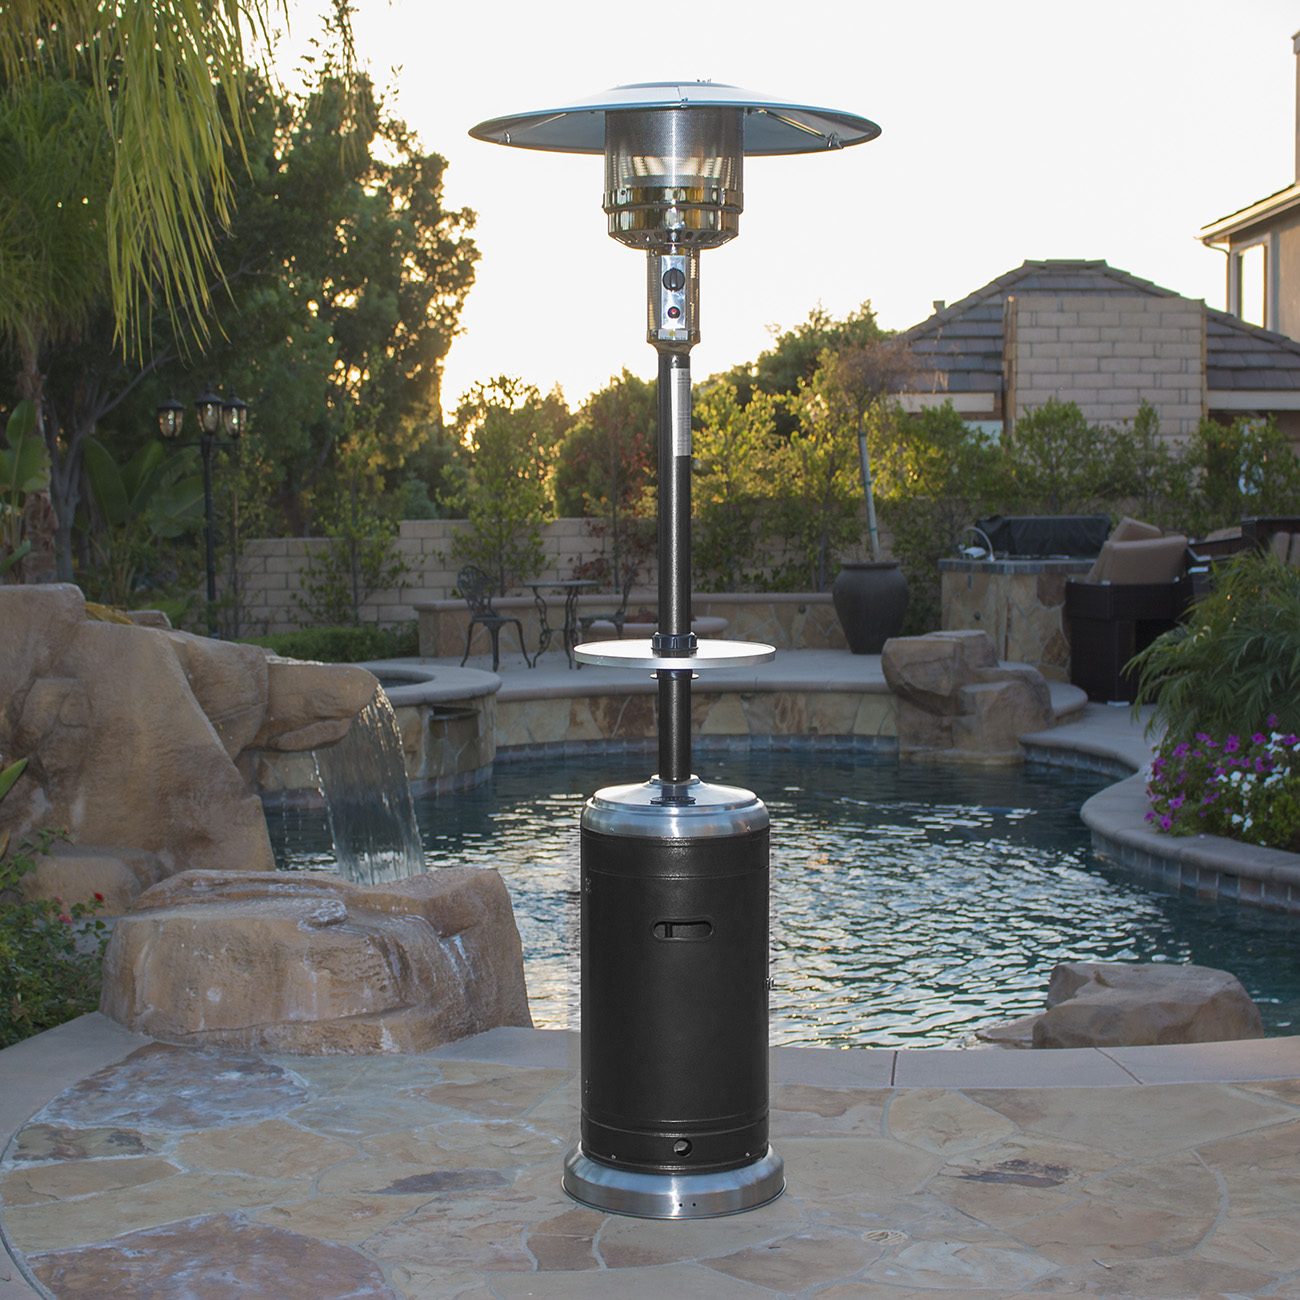 48000 BTU Hammered Black Propane Two Tone Patio Heater Deck and Table LP Gas & 48000 BTU Hammered Black Propane Two Tone Patio Heater Deck and ...